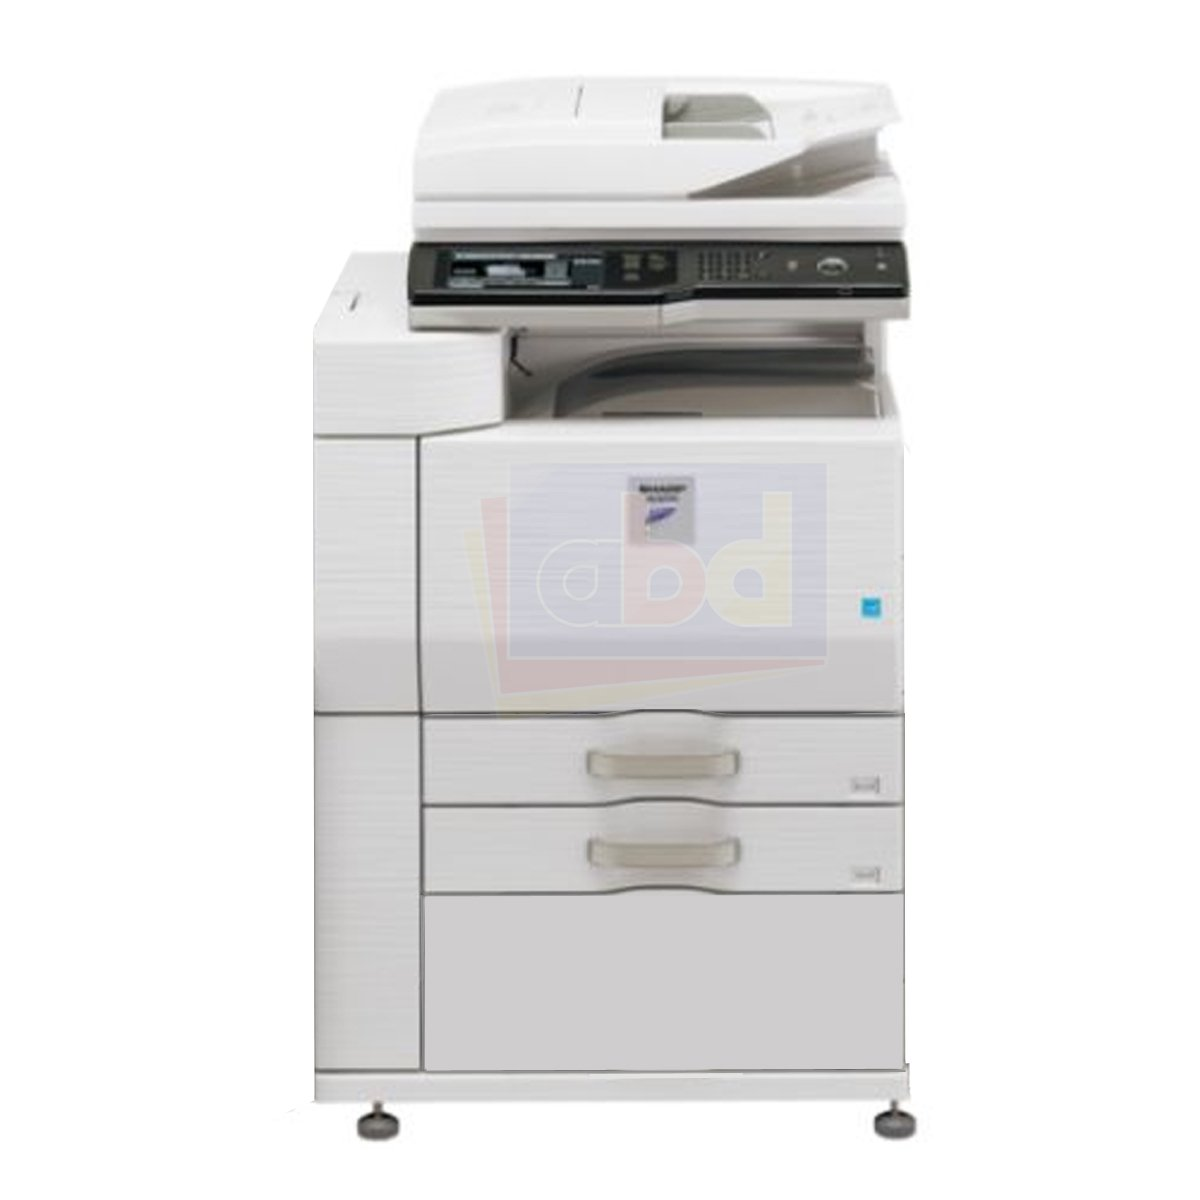 Amazon.com: Refurbished Sharp MX-M623 - Impresora ...